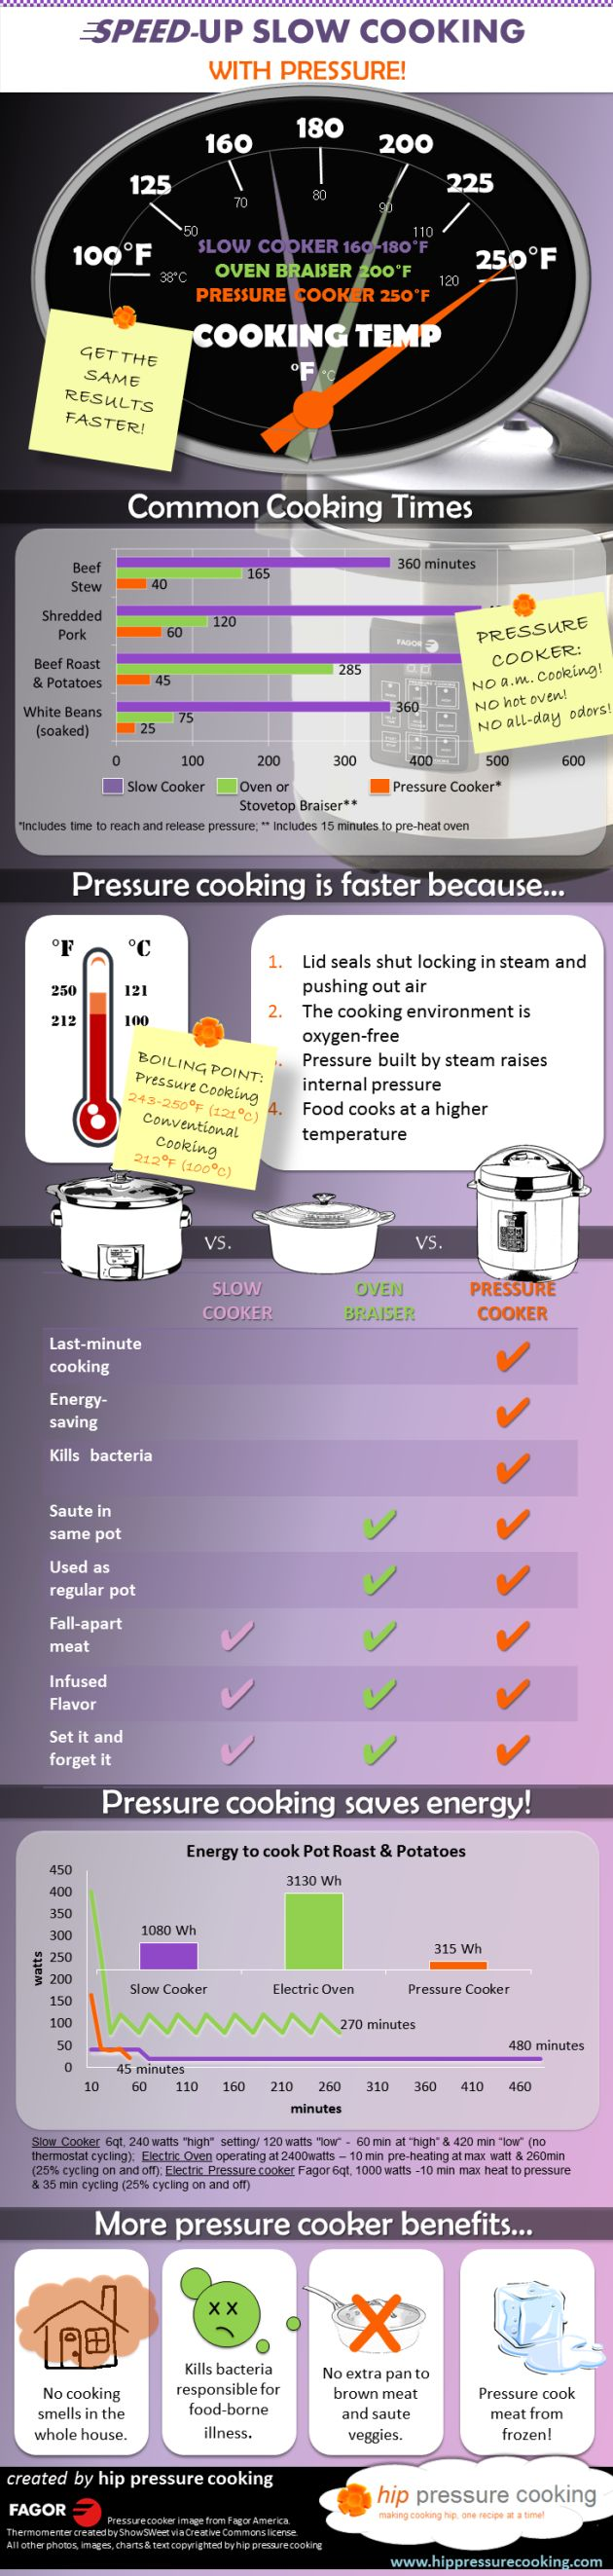 Infographic on why we might wish to reconsider our phobias about pressure cookers -- modern pressure cookers are very different machines: they are completely safe and a pleasure to use, and you can even get kitchen counter top electric ones.  http://www.hippressurecooking.com/infographic-speed-up-slow-cooking-with-pressure/